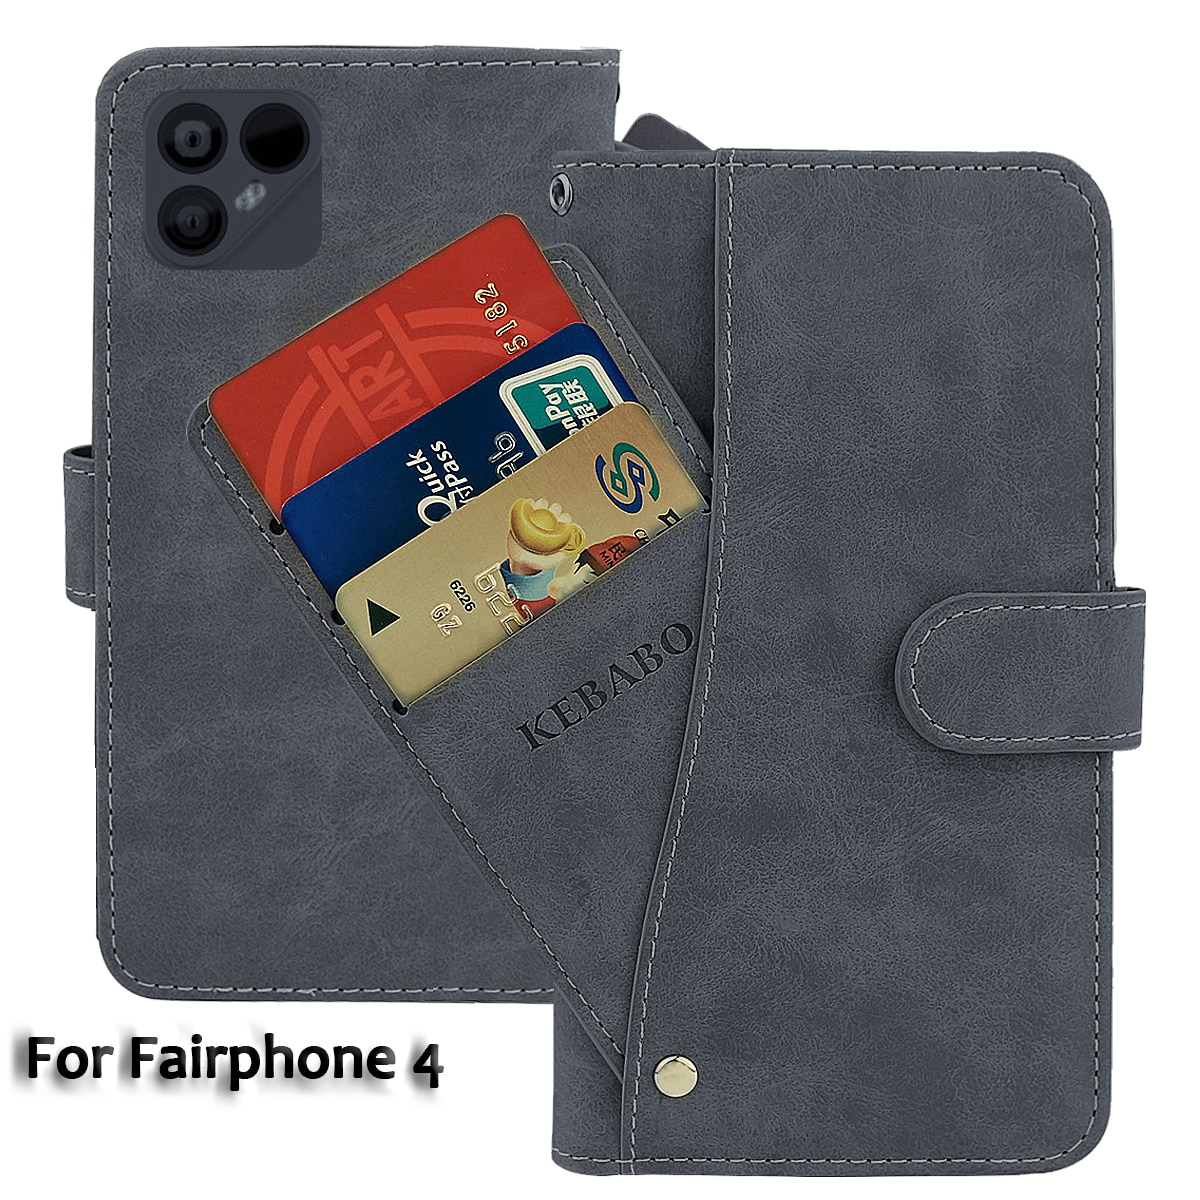 Leather Wallet Fairphone 4 Case 6.3